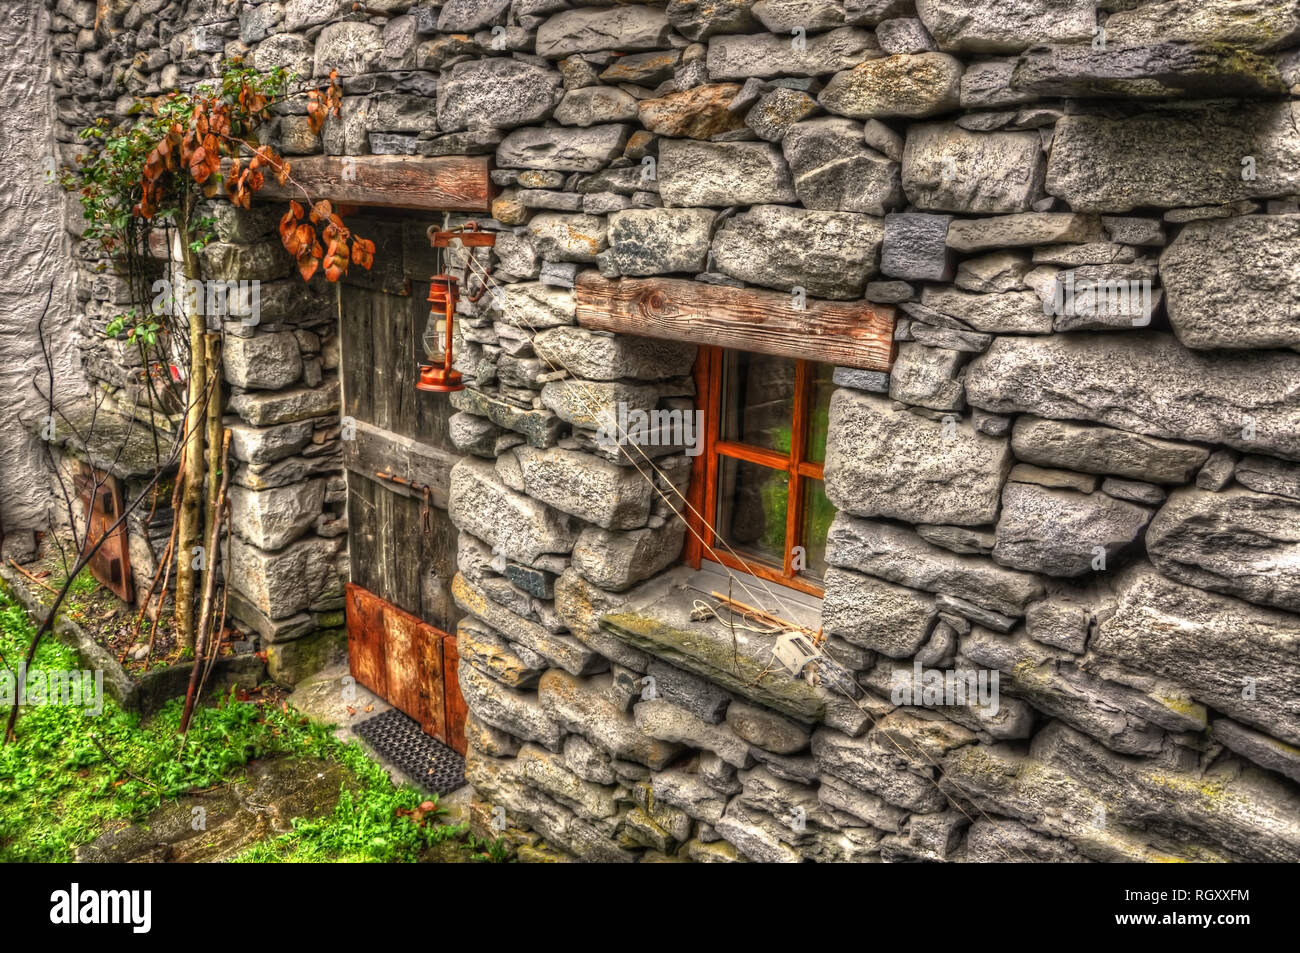 Rustic House in Stone Material in Ticino, Switzerland. - Stock Image